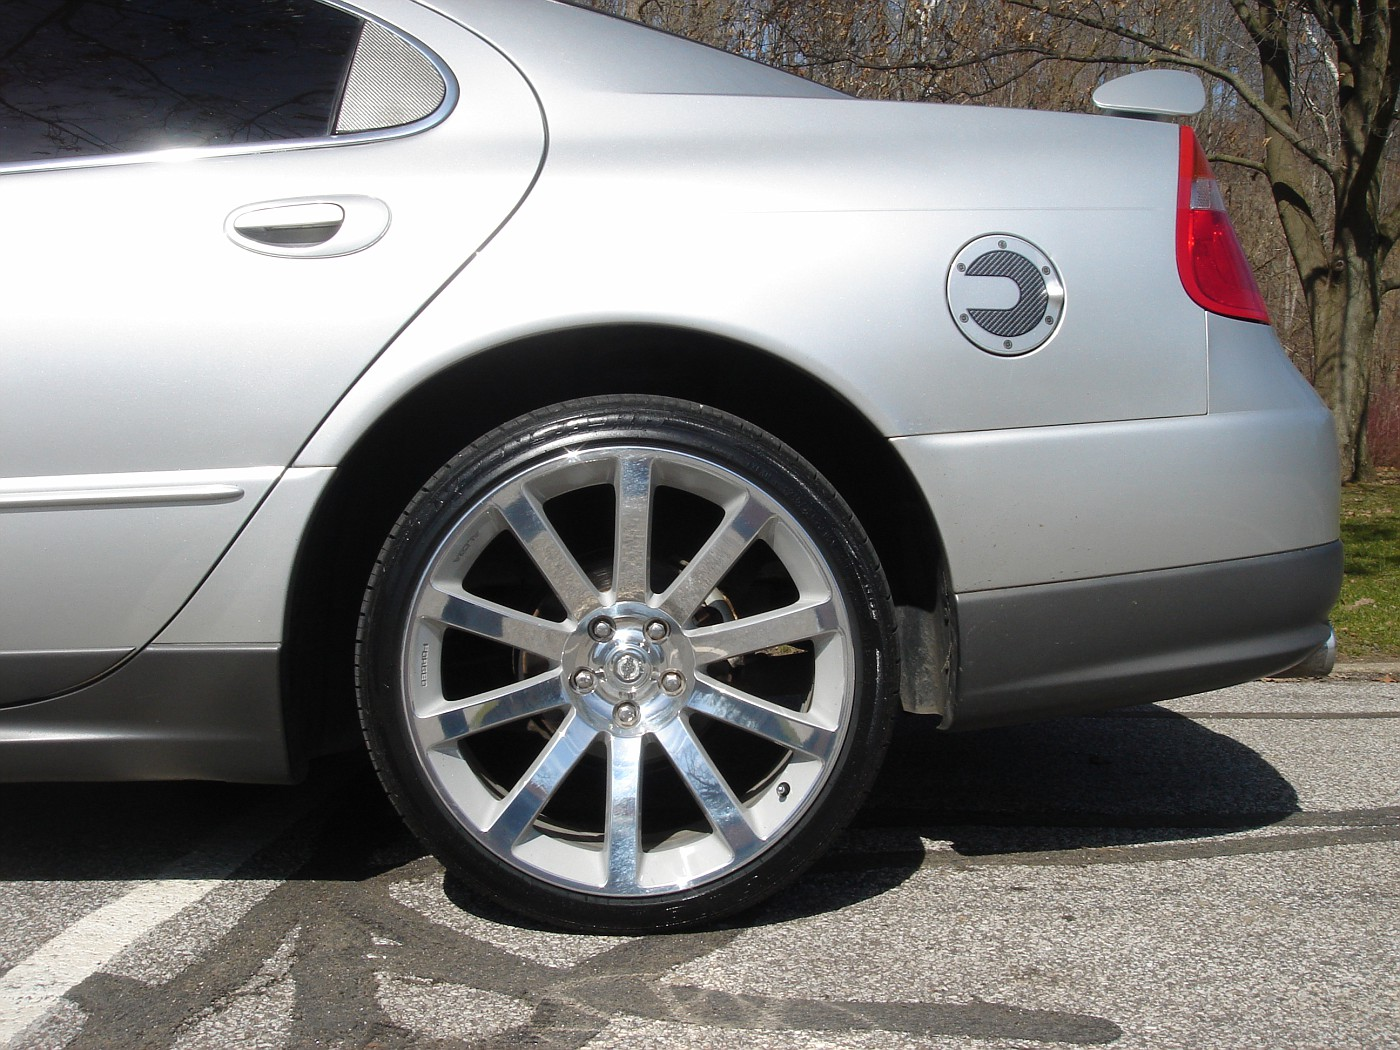 Best size tire for my rims... - Chrysler 300M Enthusiasts Club